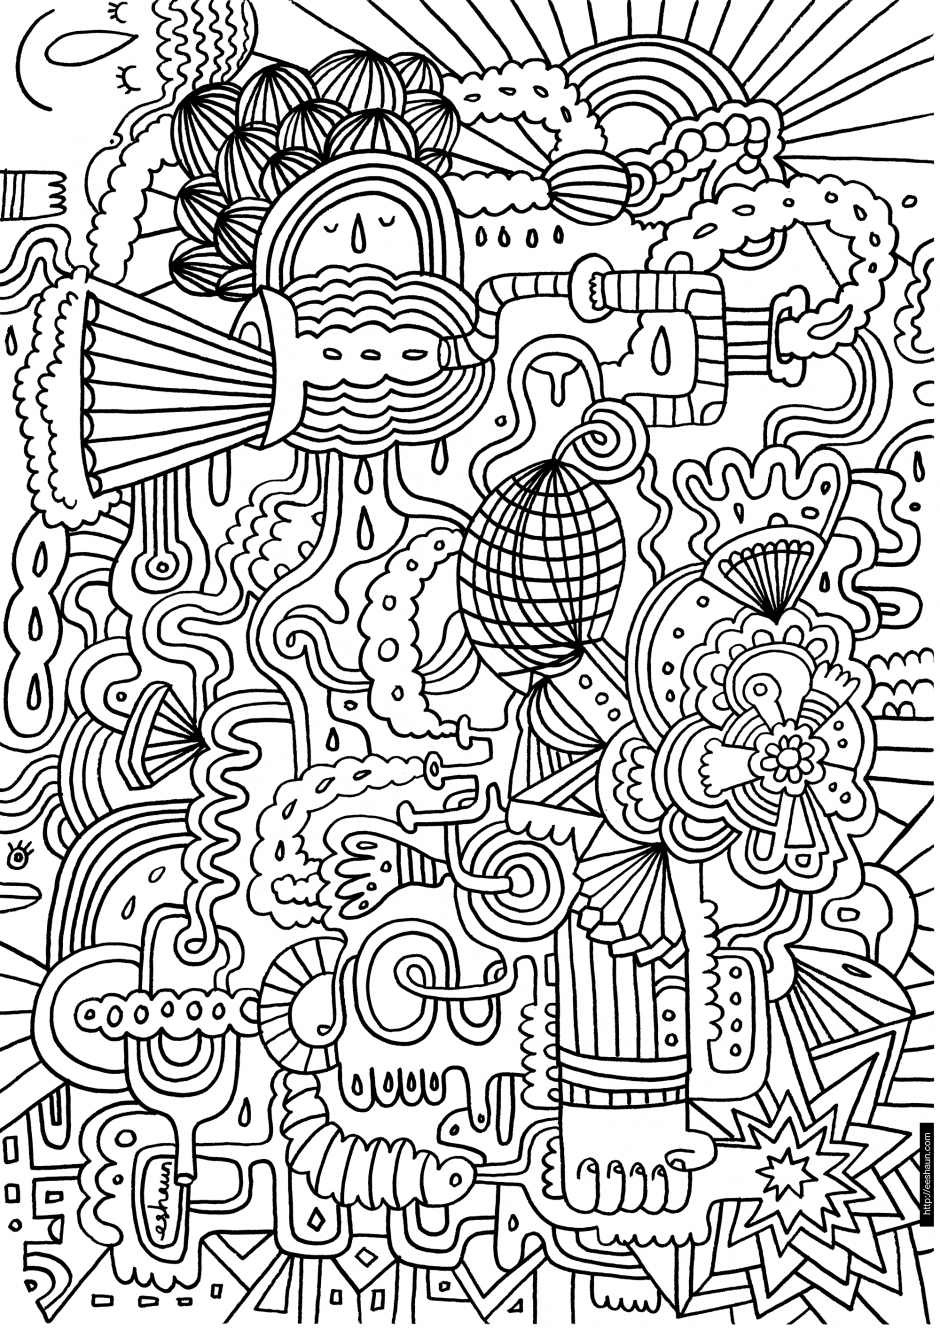 difficult fun coloring pages coloringfilminspectorcom - Fun Color Sheets